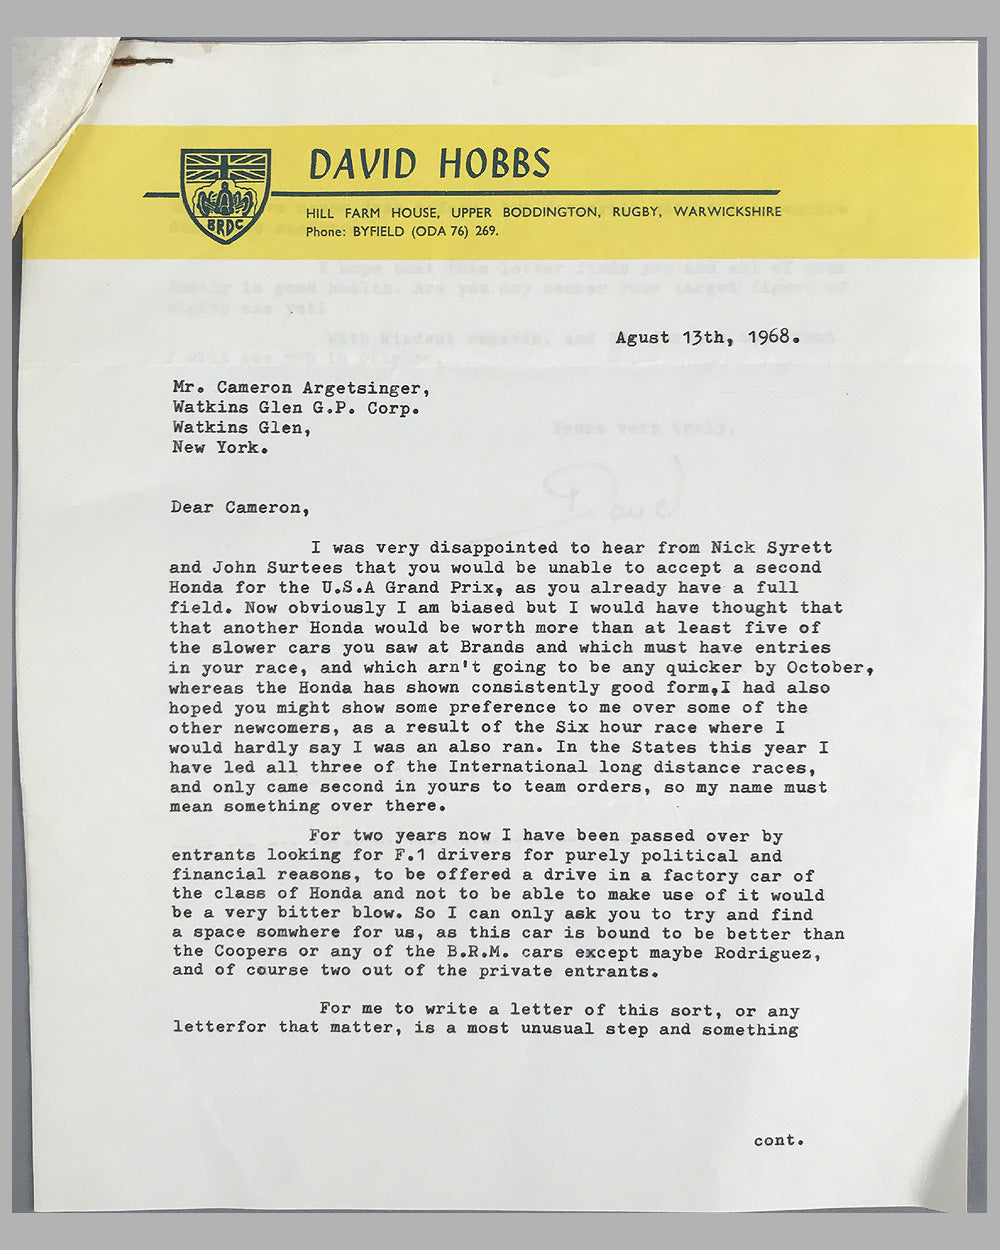 05 - David Hobbs and Watkins Glen race track correspondence -  Est. $150-$200